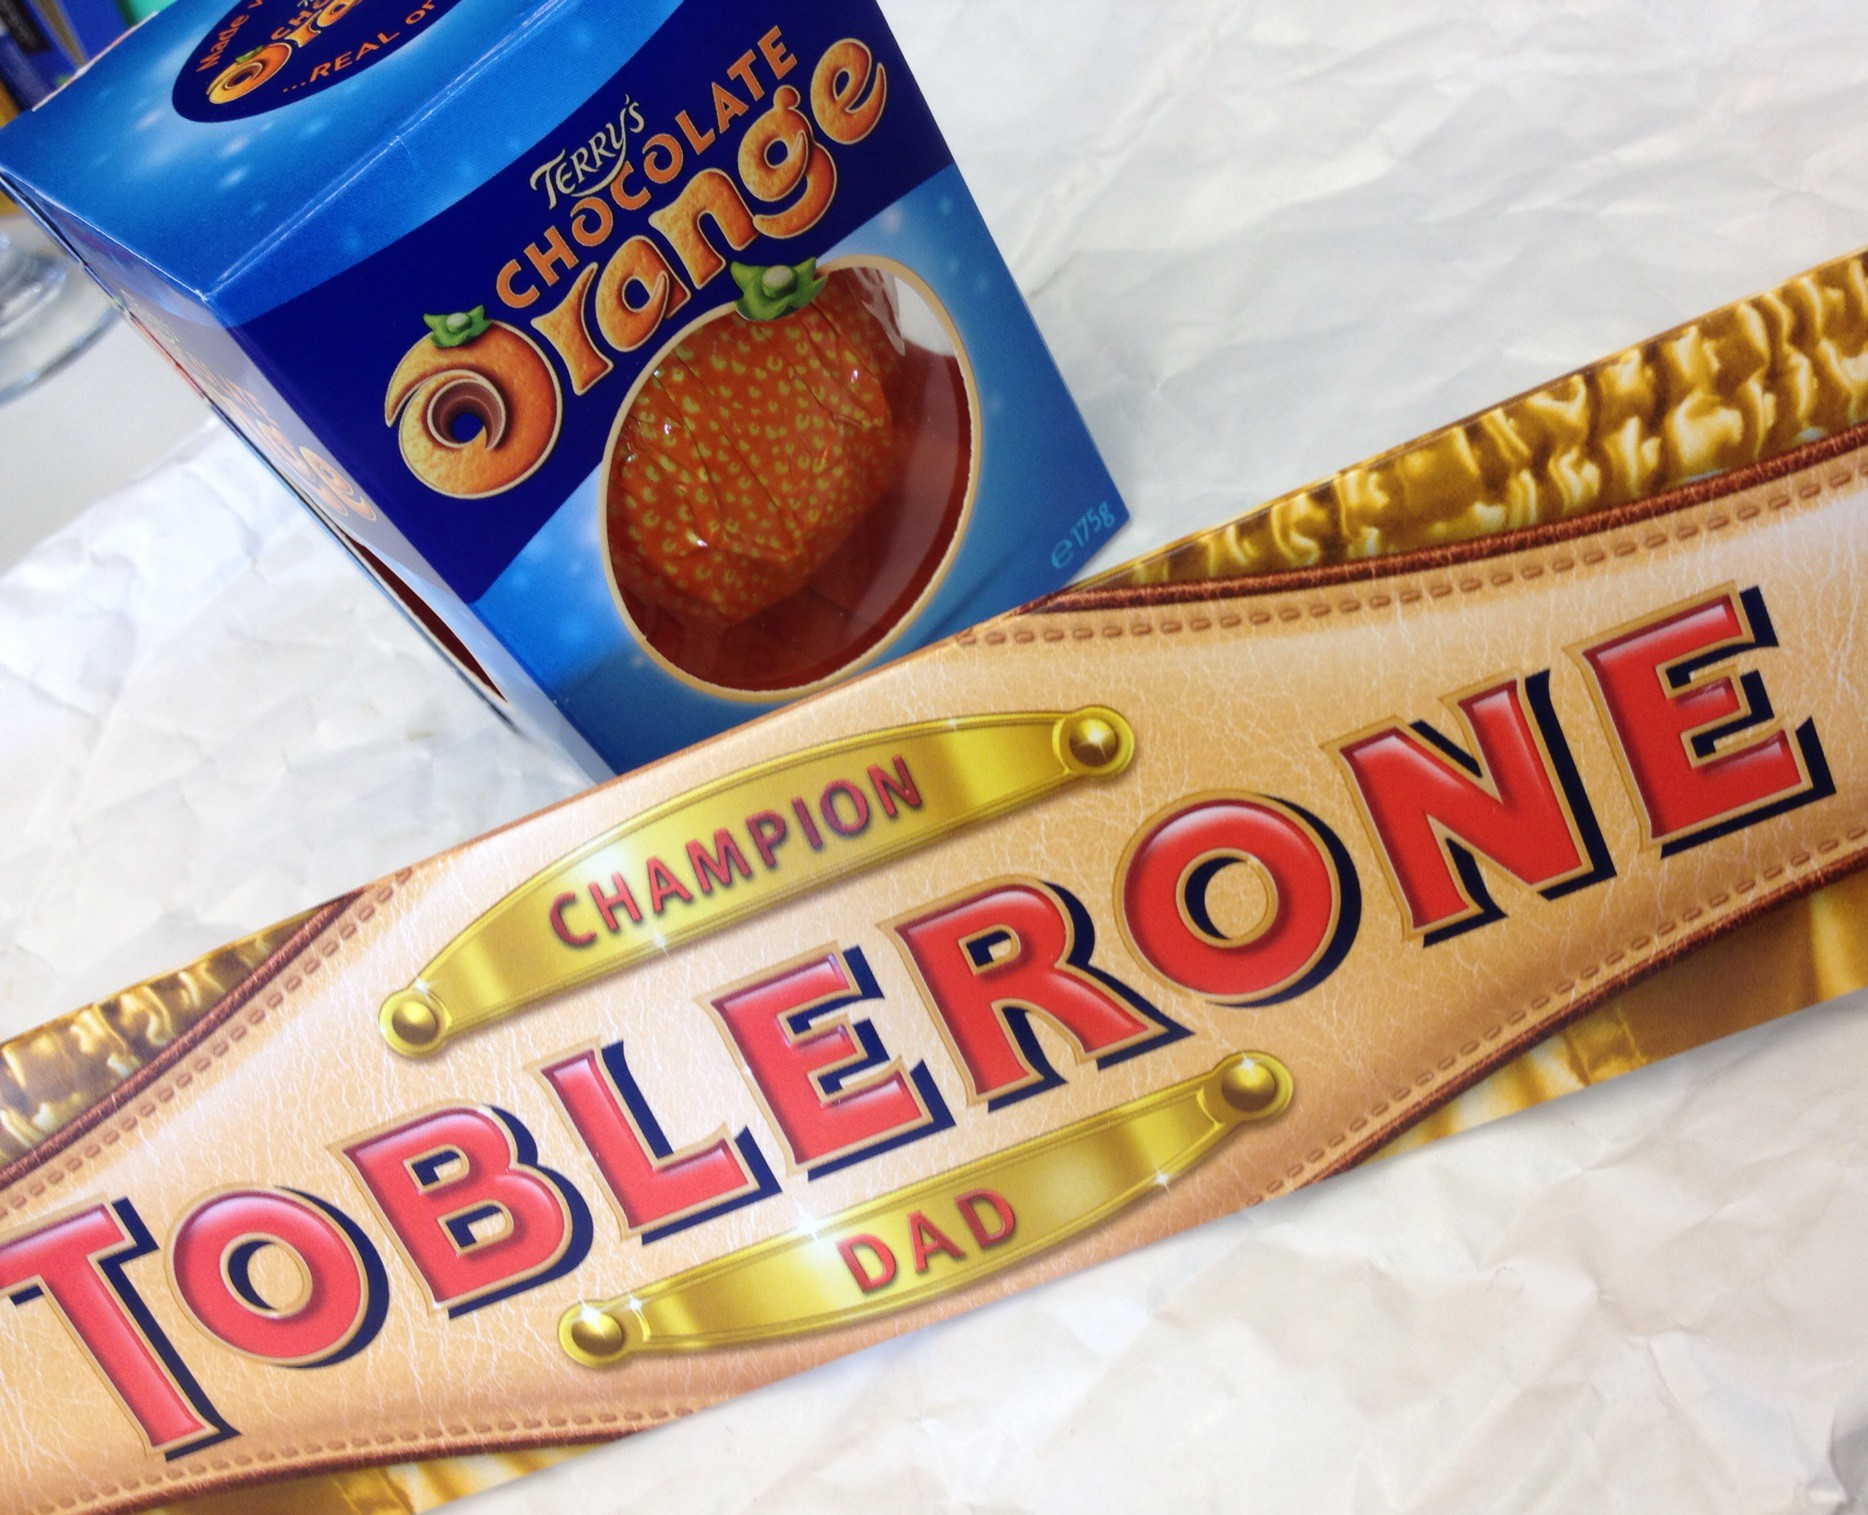 Toblerone and Terrys Chocolate orange - Fathers day gifts